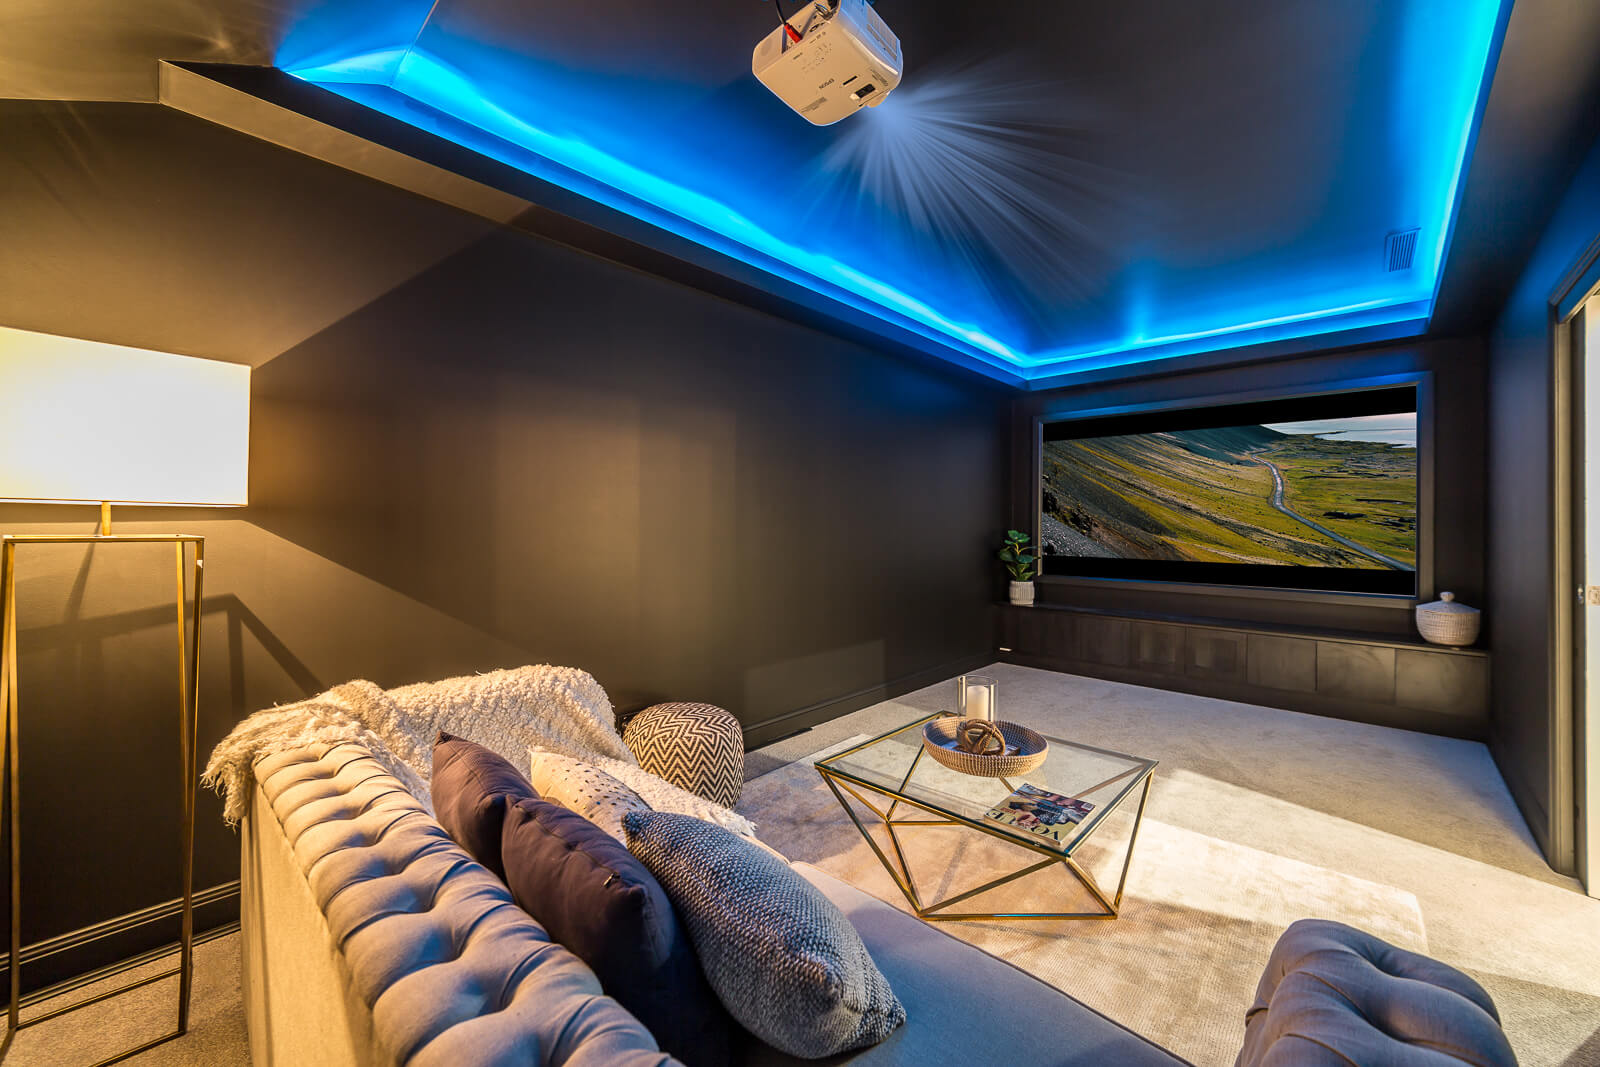 Blue LED strip lighting in ceiling cove